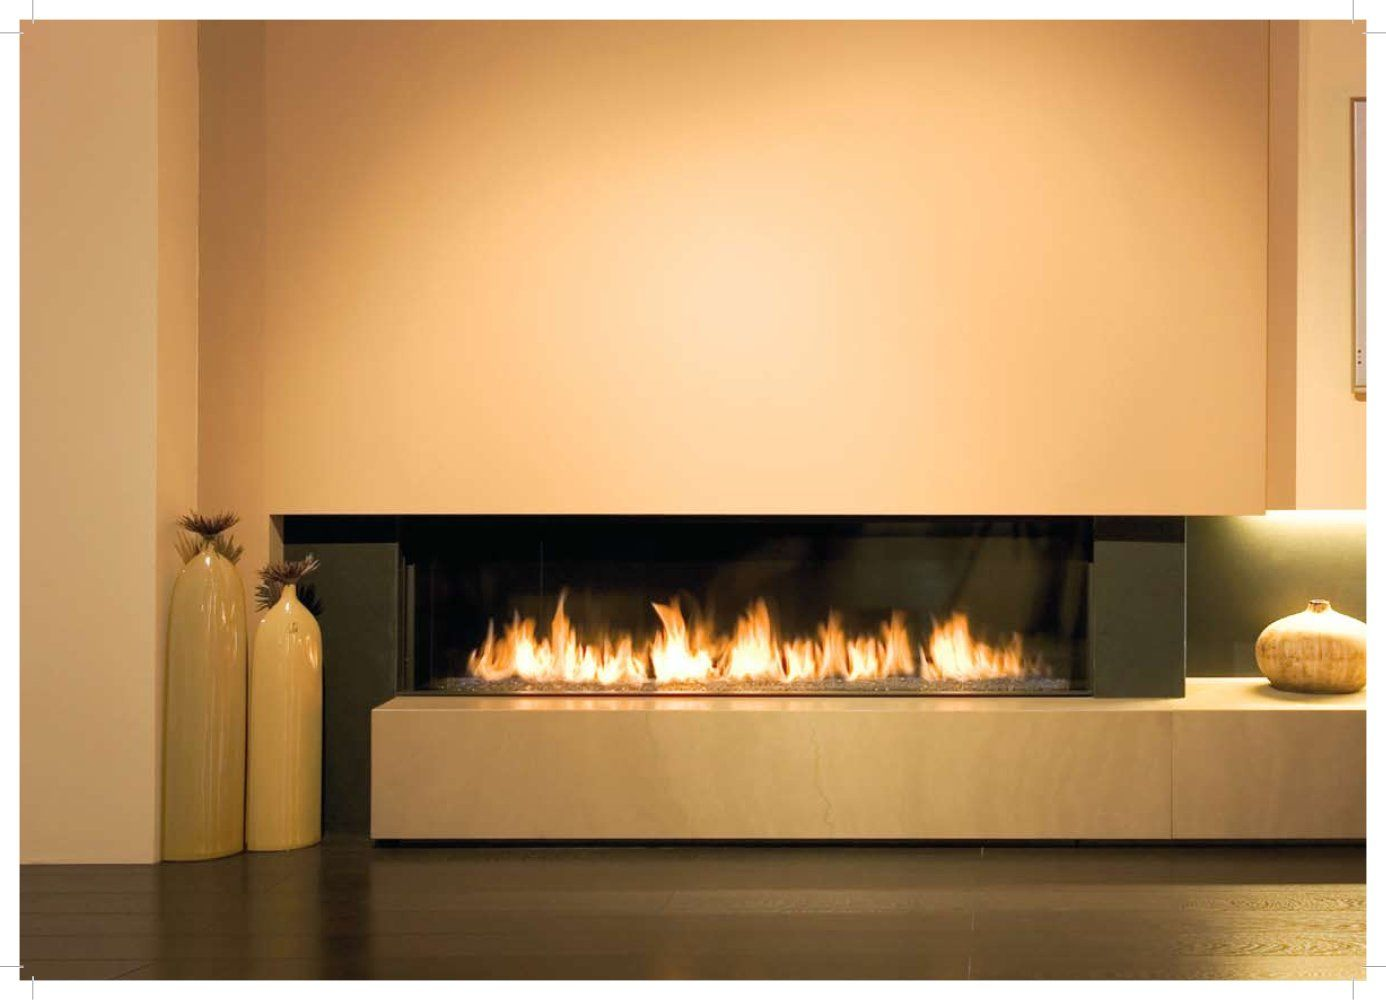 Wood burning fireplace inserts are especially designed heating units ...